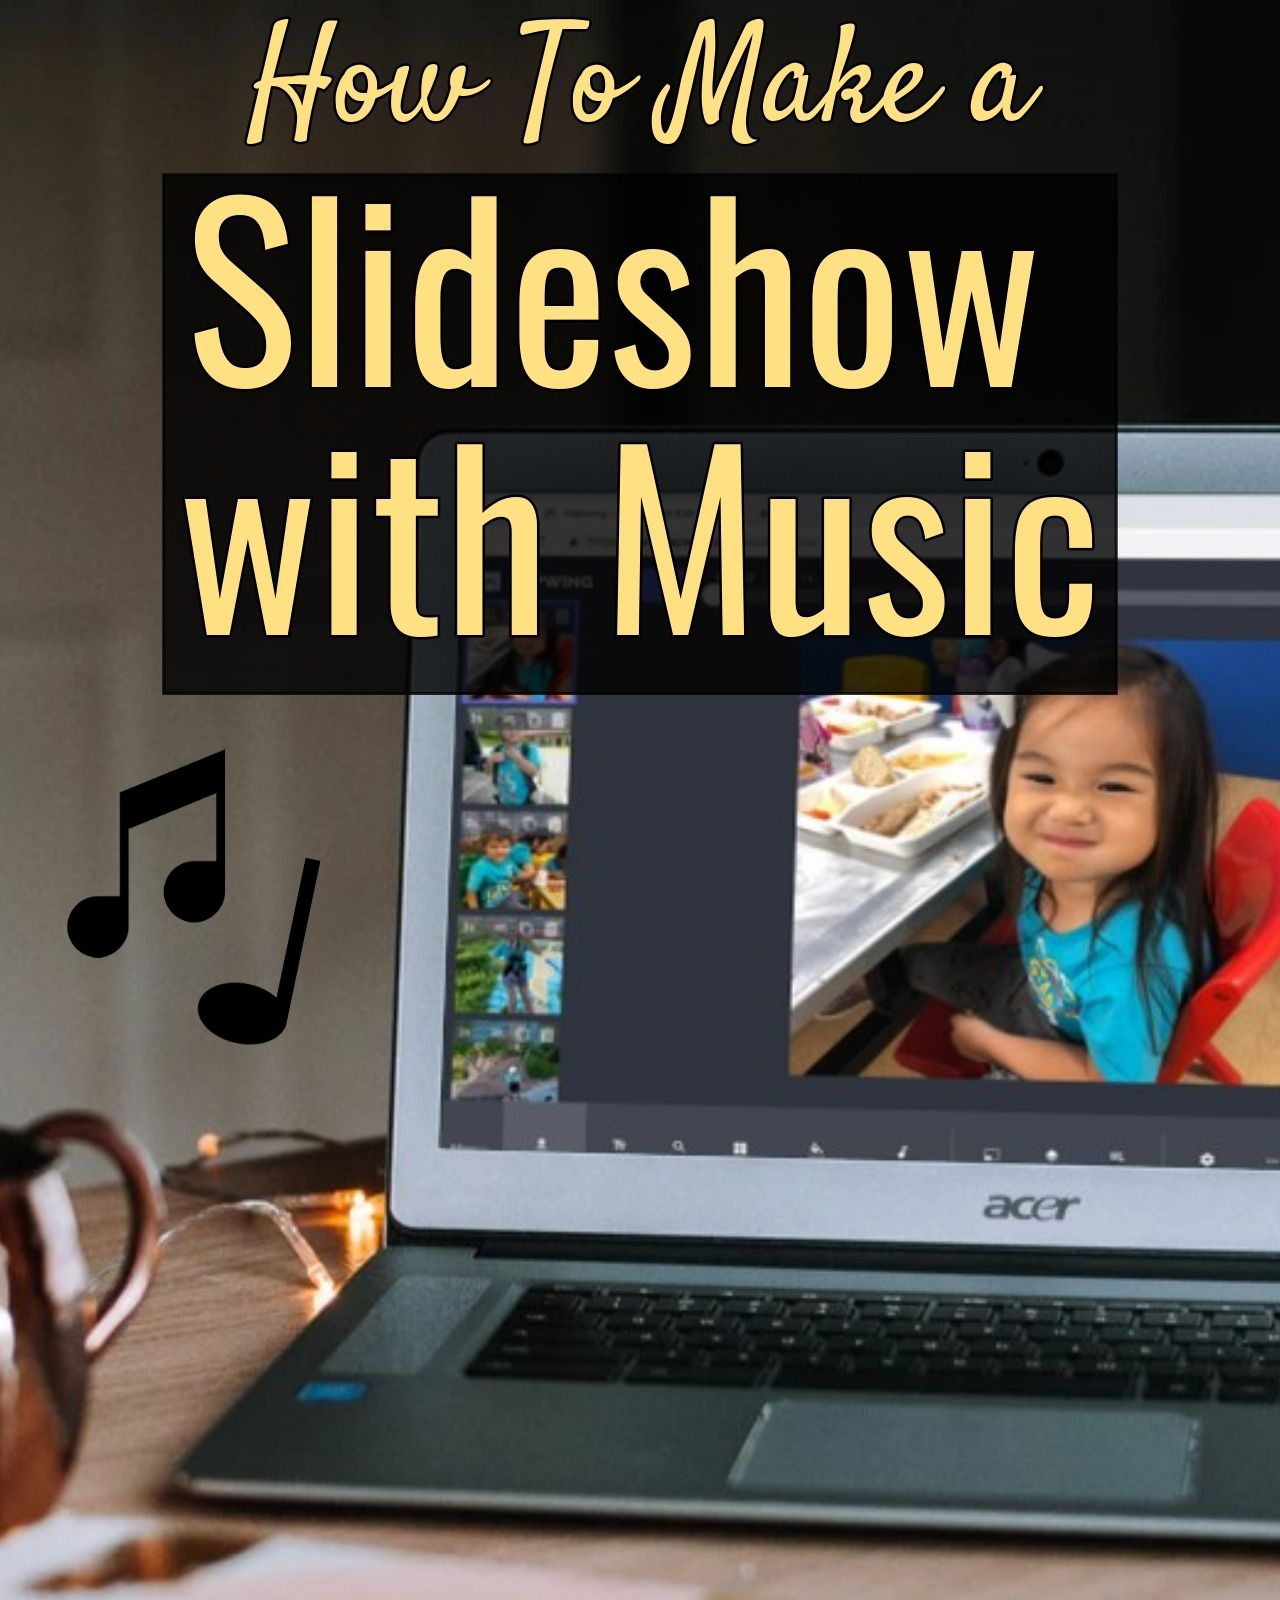 How to make a slideshow with music combine photos